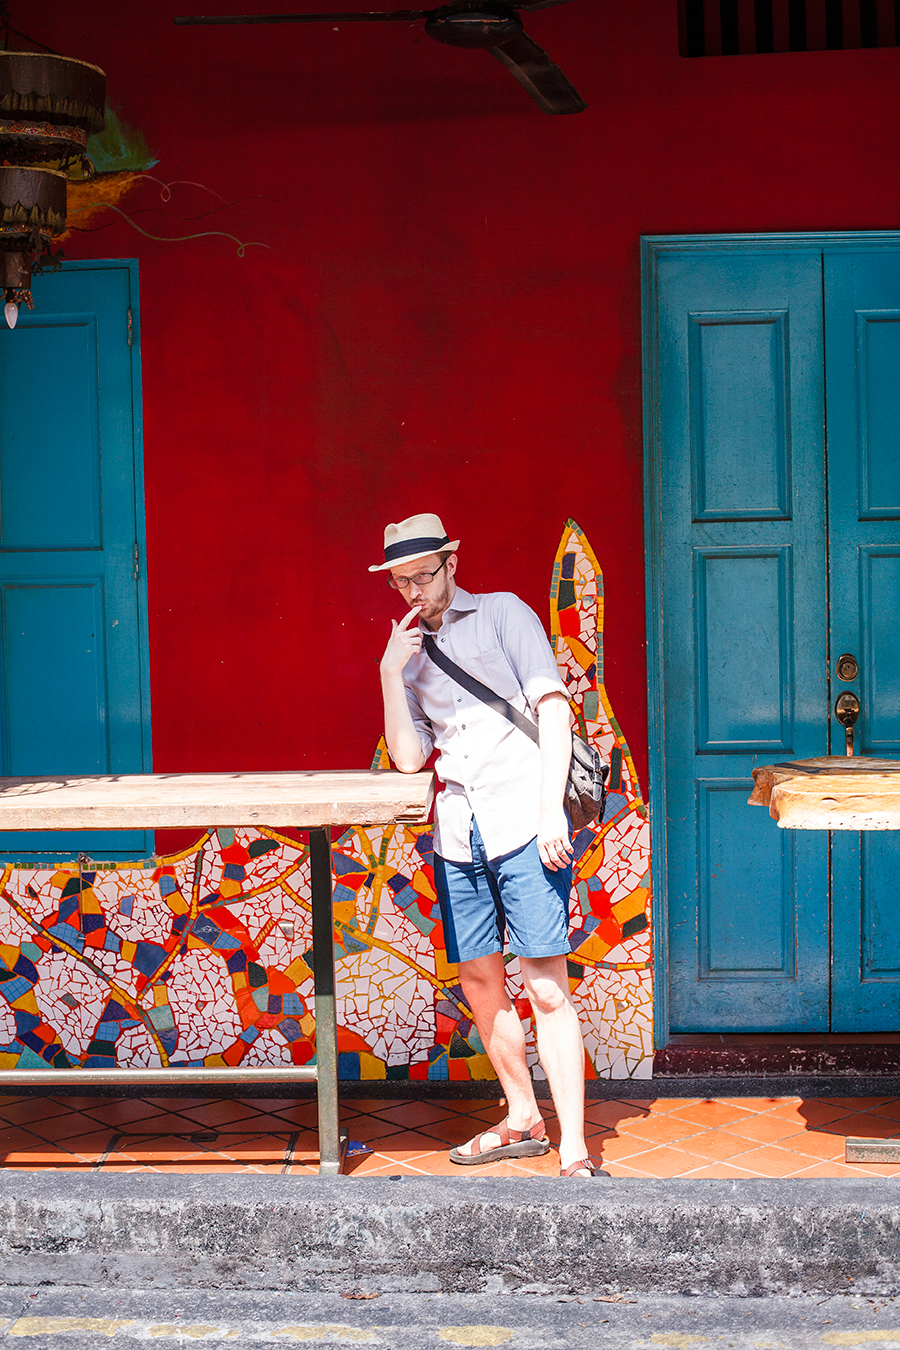 Ottie posing in front of a mosaic facade at Haji Lane, Singapore